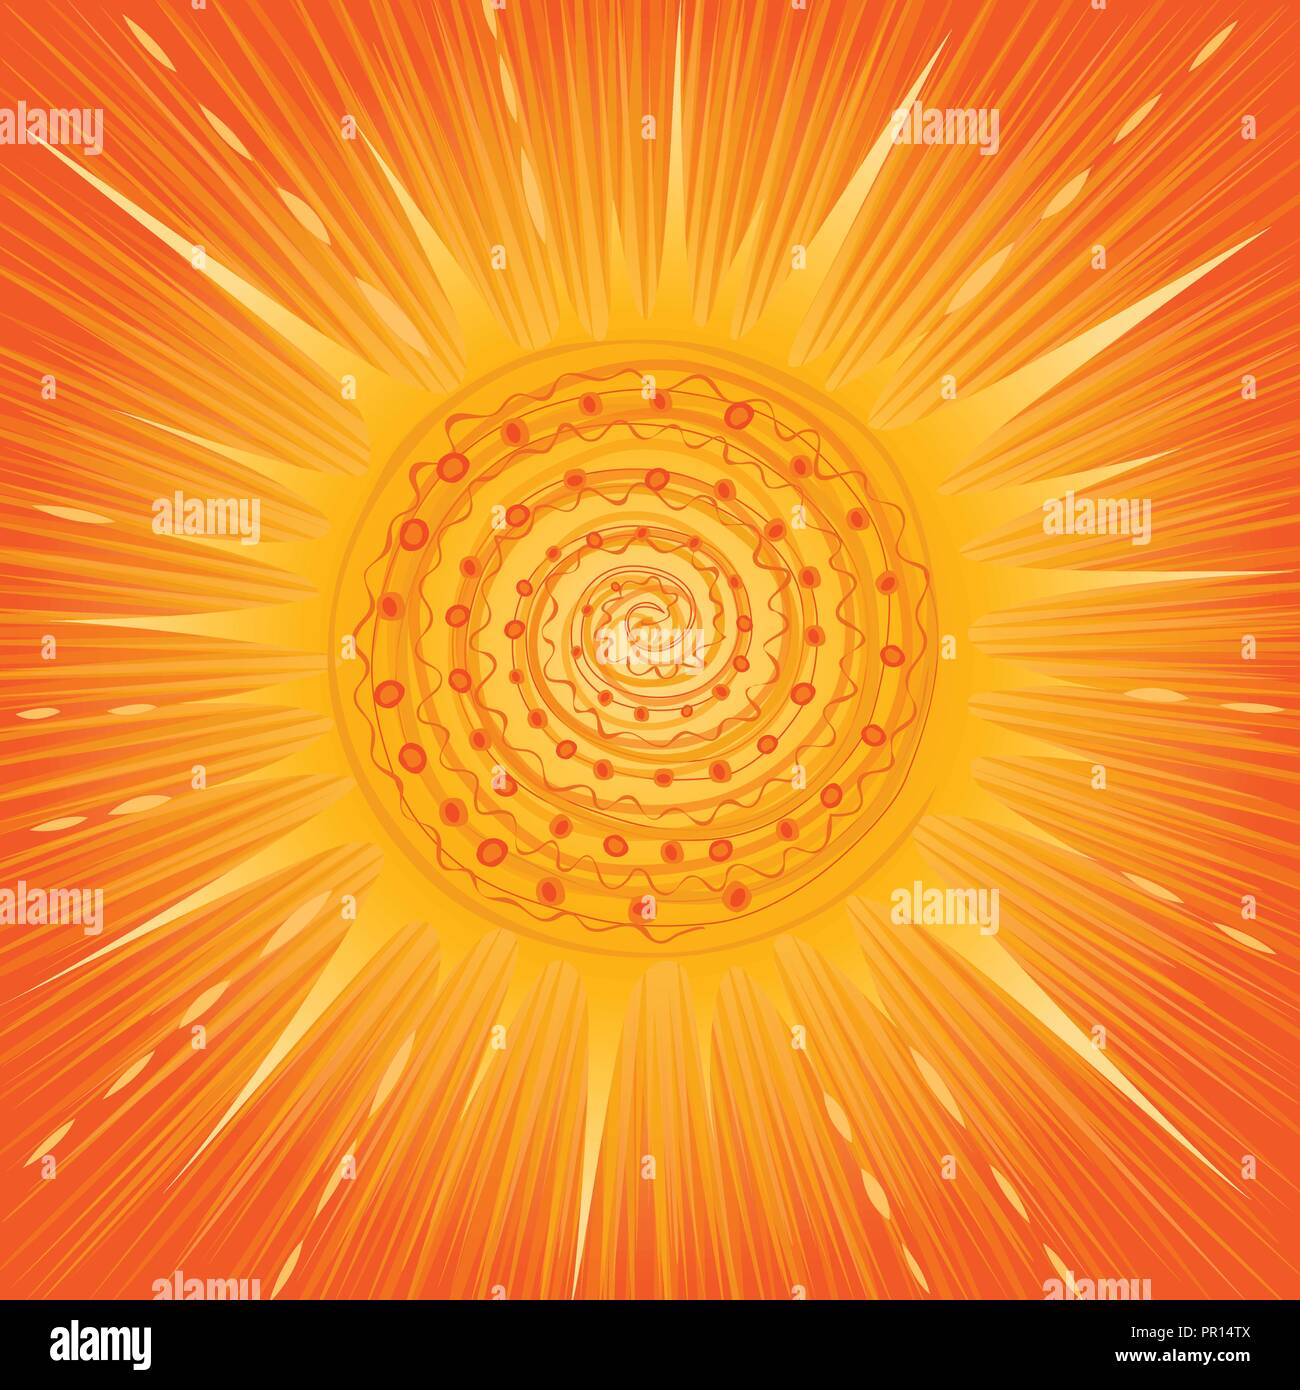 blazing sun in an orange sky stylised illustration - Stock Vector